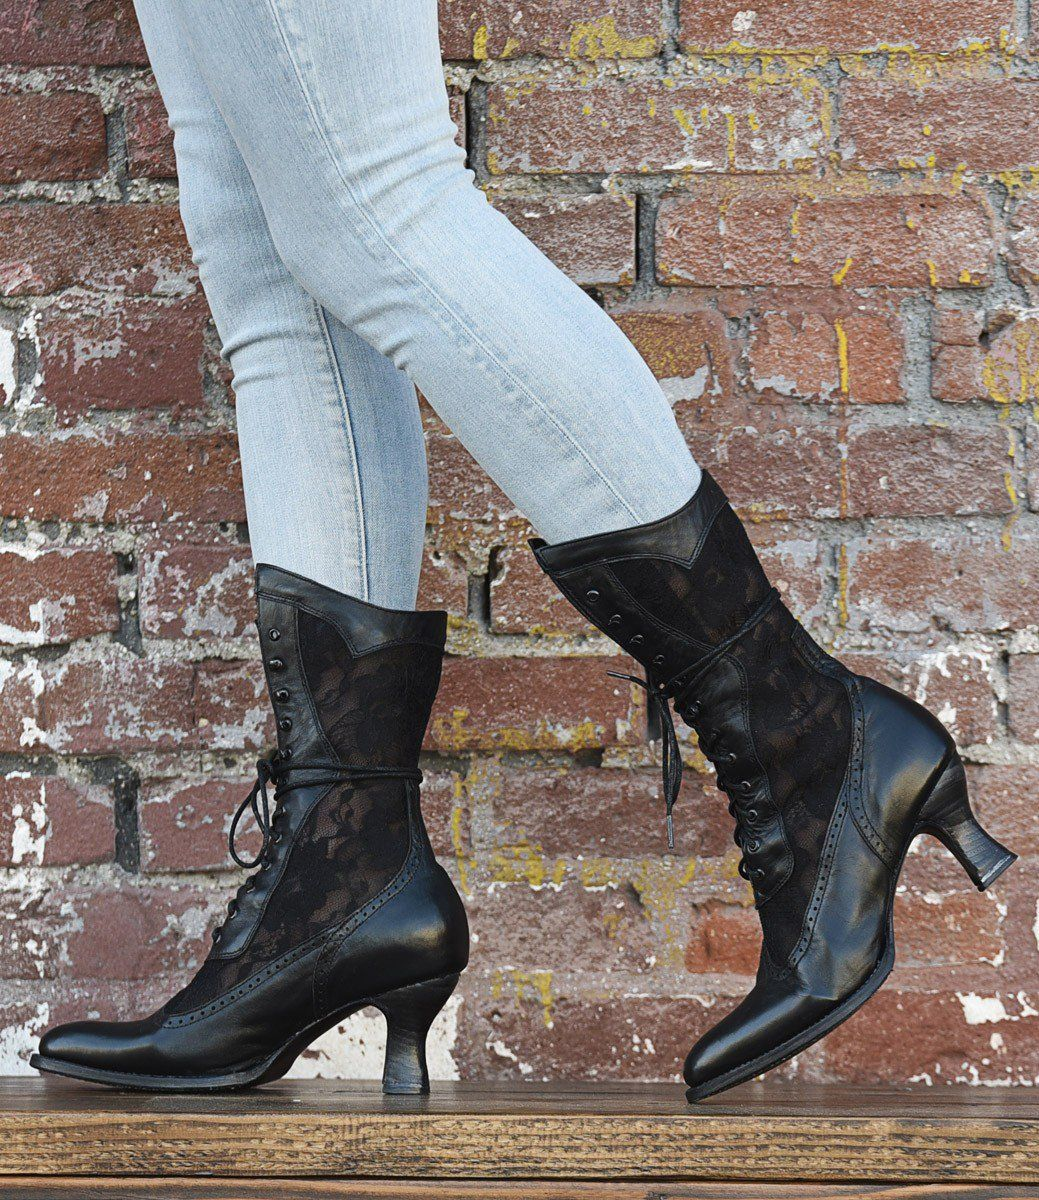 ce4a7de26ab Victorian Boots & Shoes – Granny Boots & Shoes Victorian Inspired Leather  Lace Boots in Black $265.00 AT vintagedancer.com